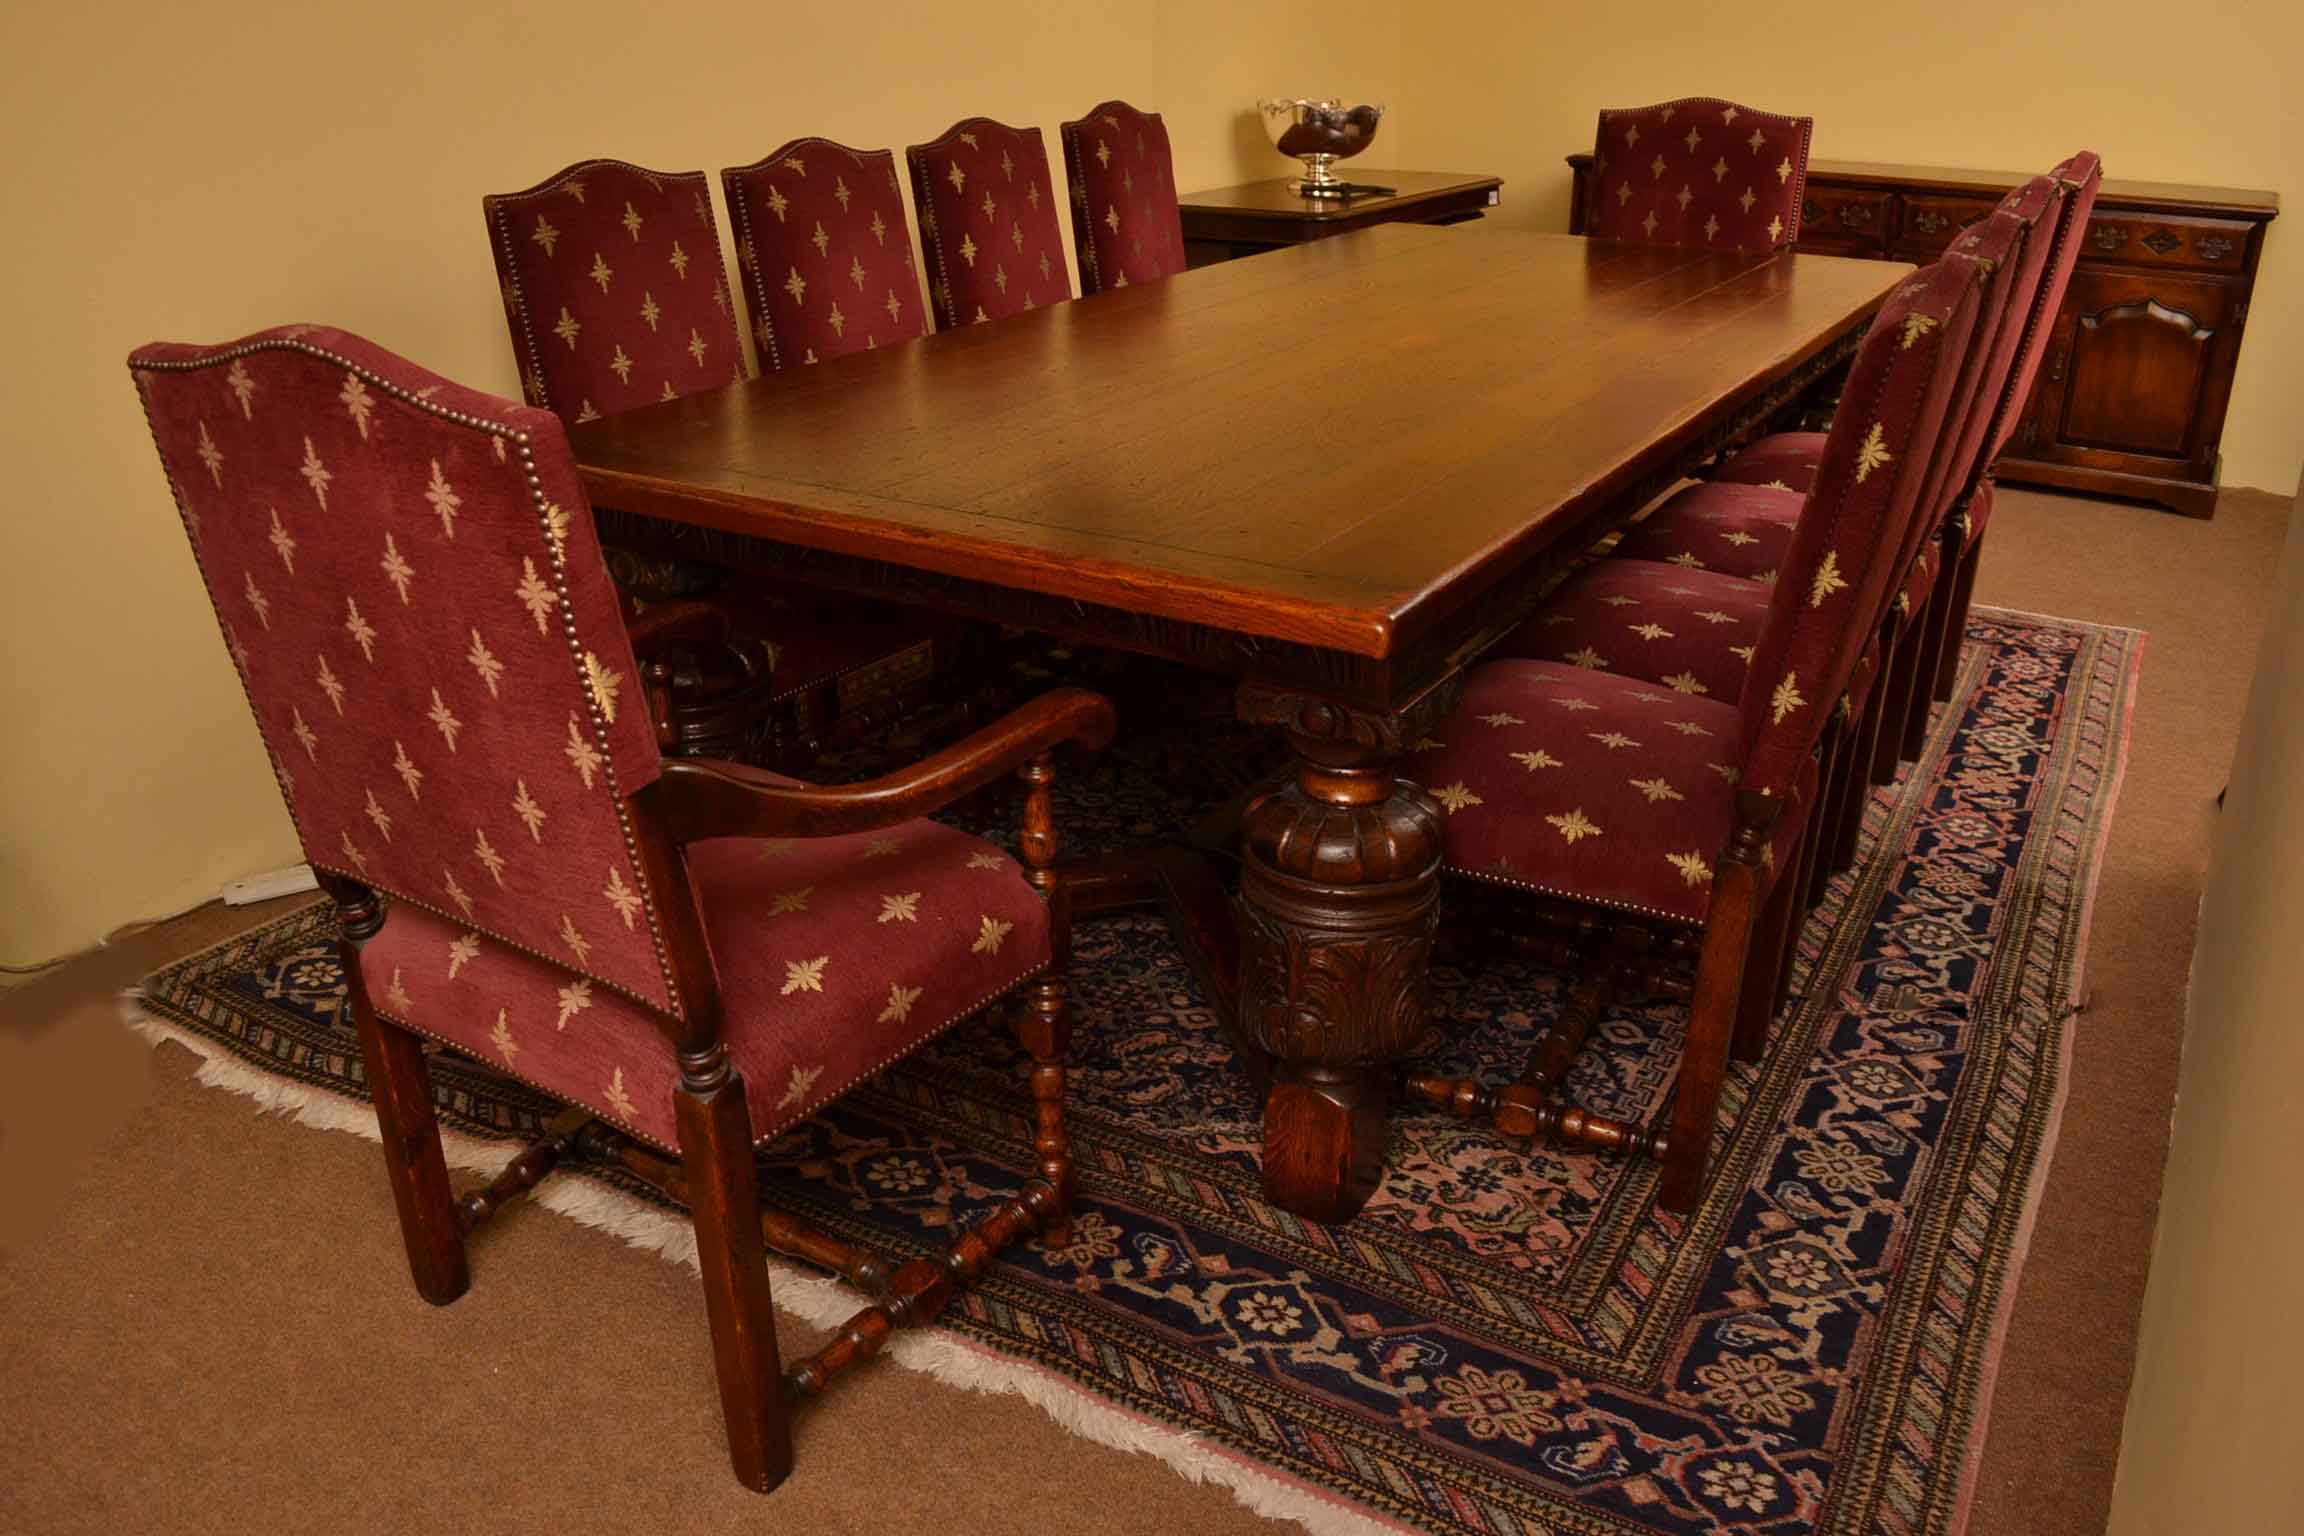 Dining Room Table With 10 Chairs Harrods Oak Dining Room Suite Refectory Table 10 Chairs